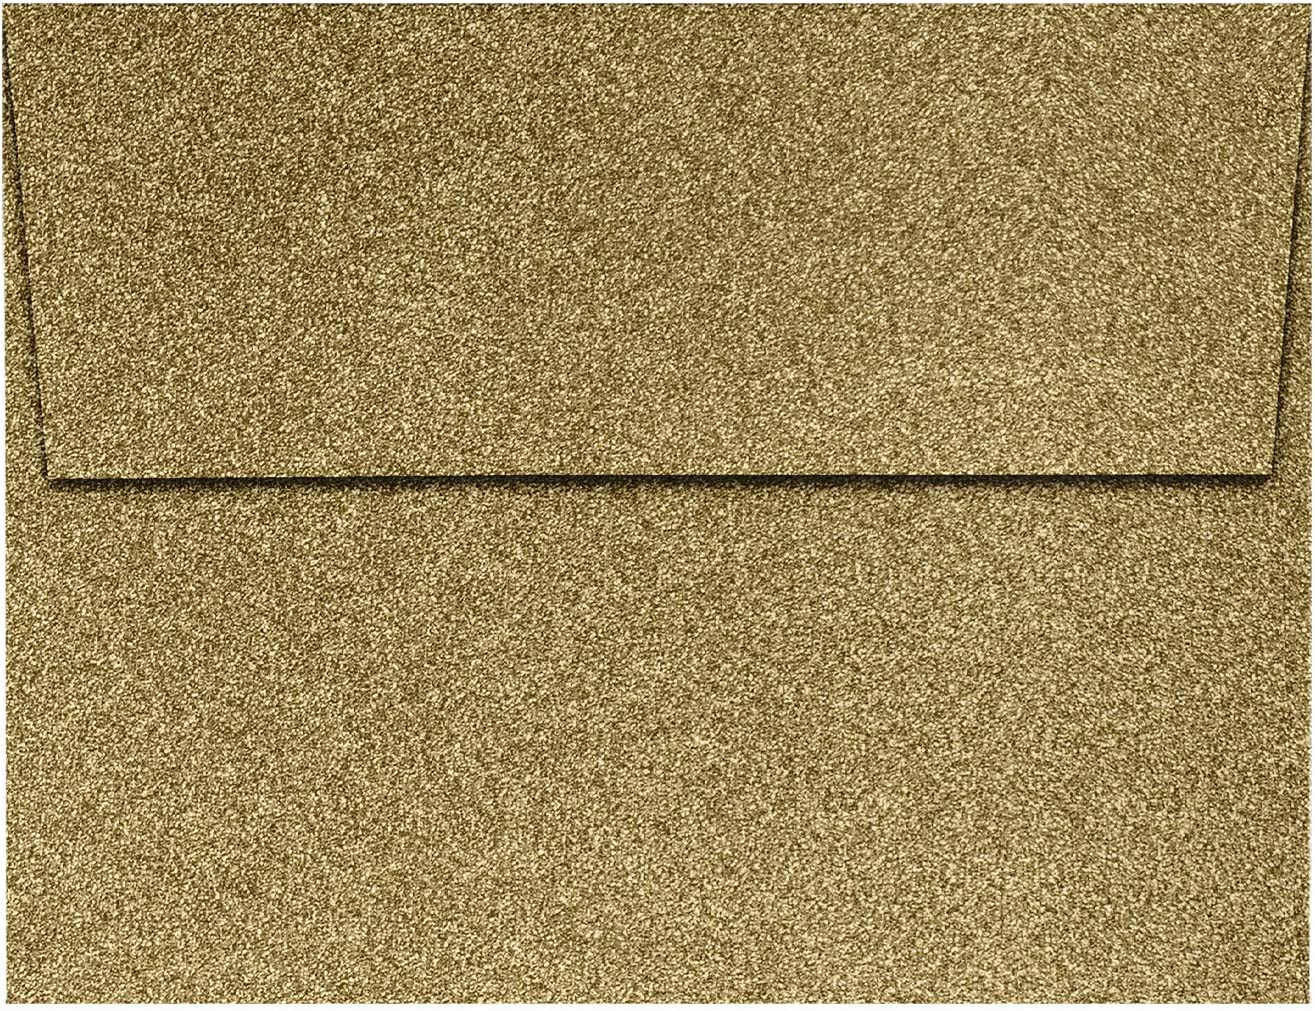 LUXPaper A2 Invitation San Diego Mall Envelopes in 90lb. for 4 1 Special sale item Gold Sparkle